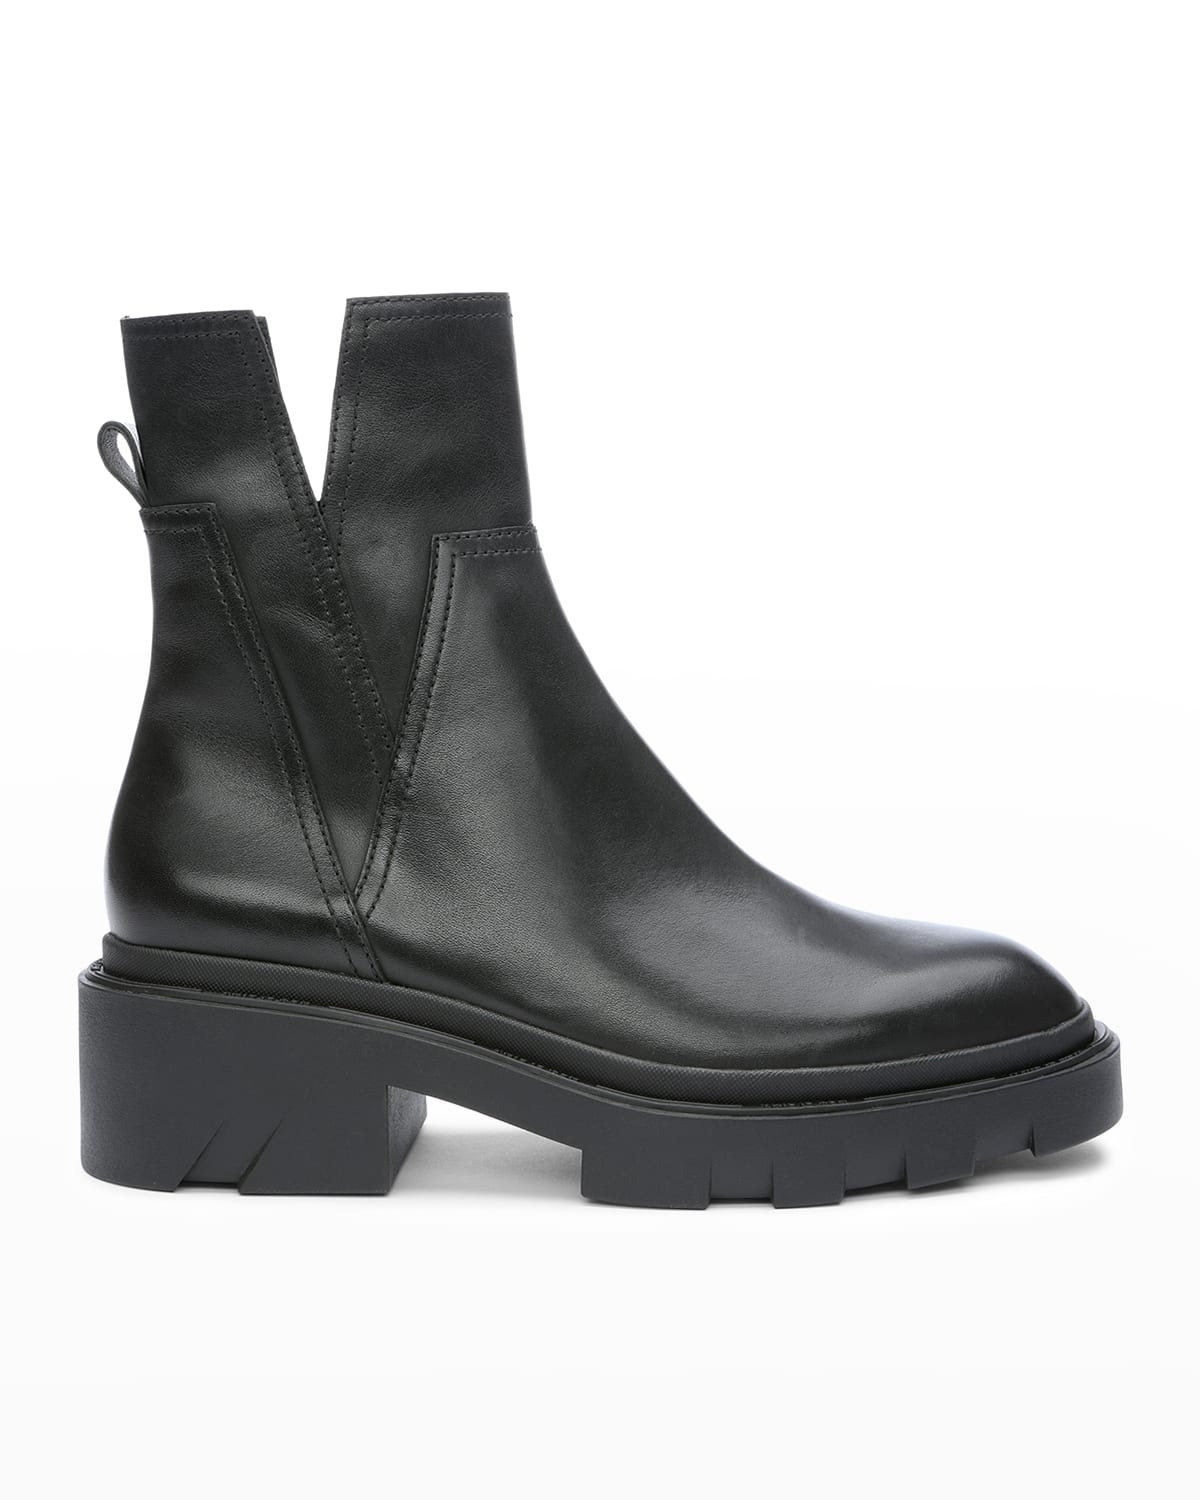 Melrose Leather Lug-Sole Booties